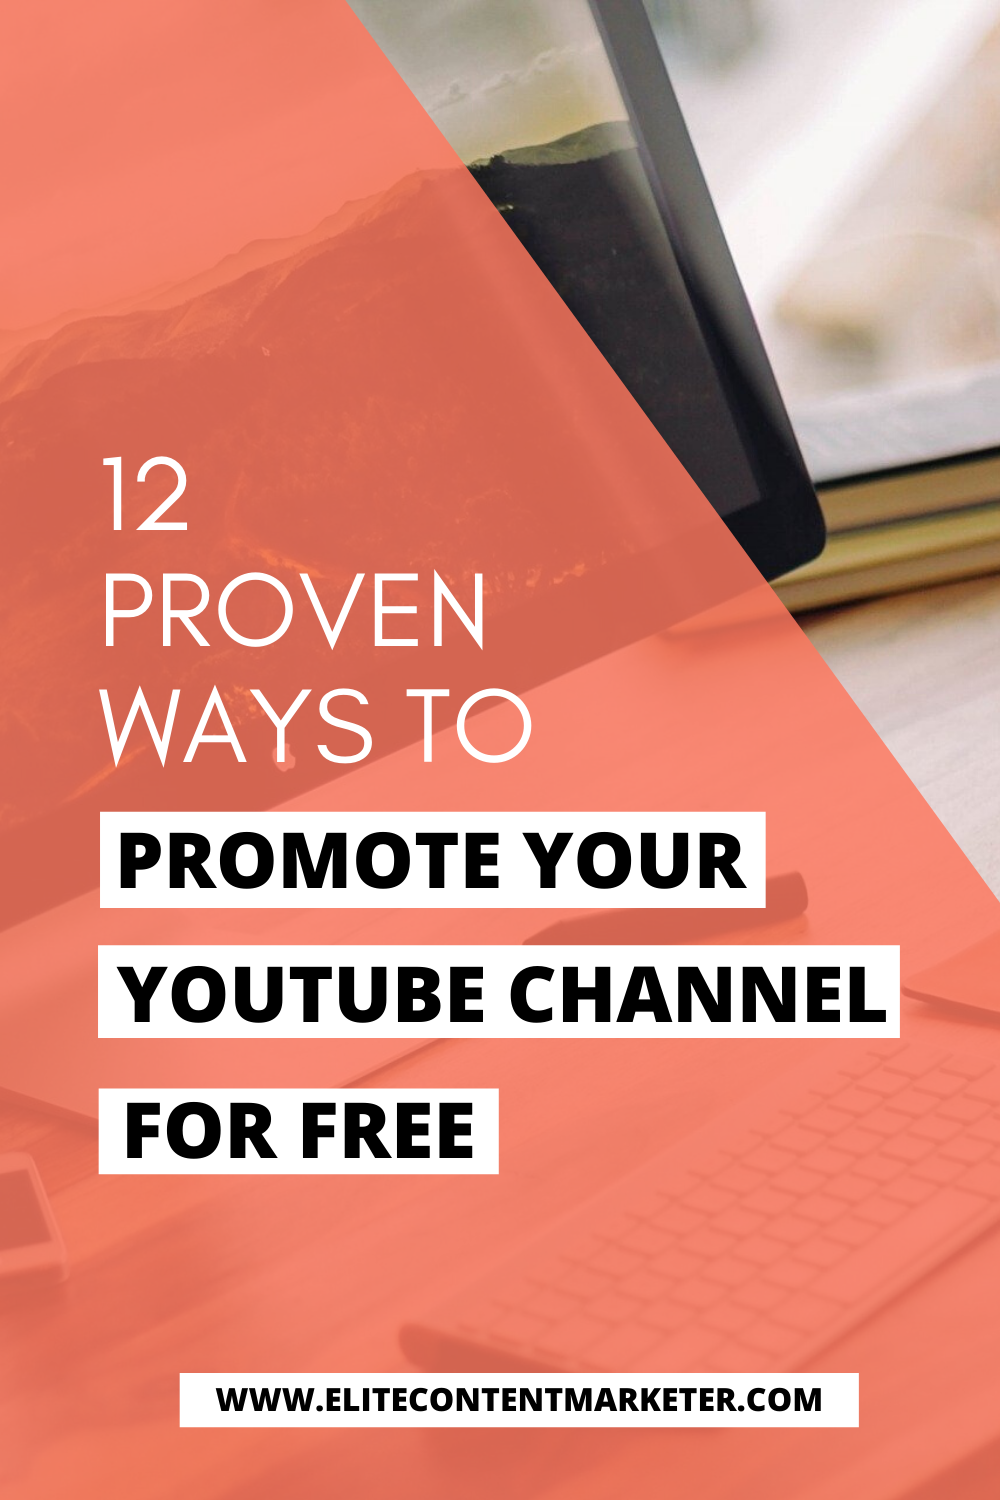 Youtube Marketing Tips How To Promote Your Youtube Channel For Free Elite Content Marketer Youtube Marketing Strategy Youtube Marketing You Youtube